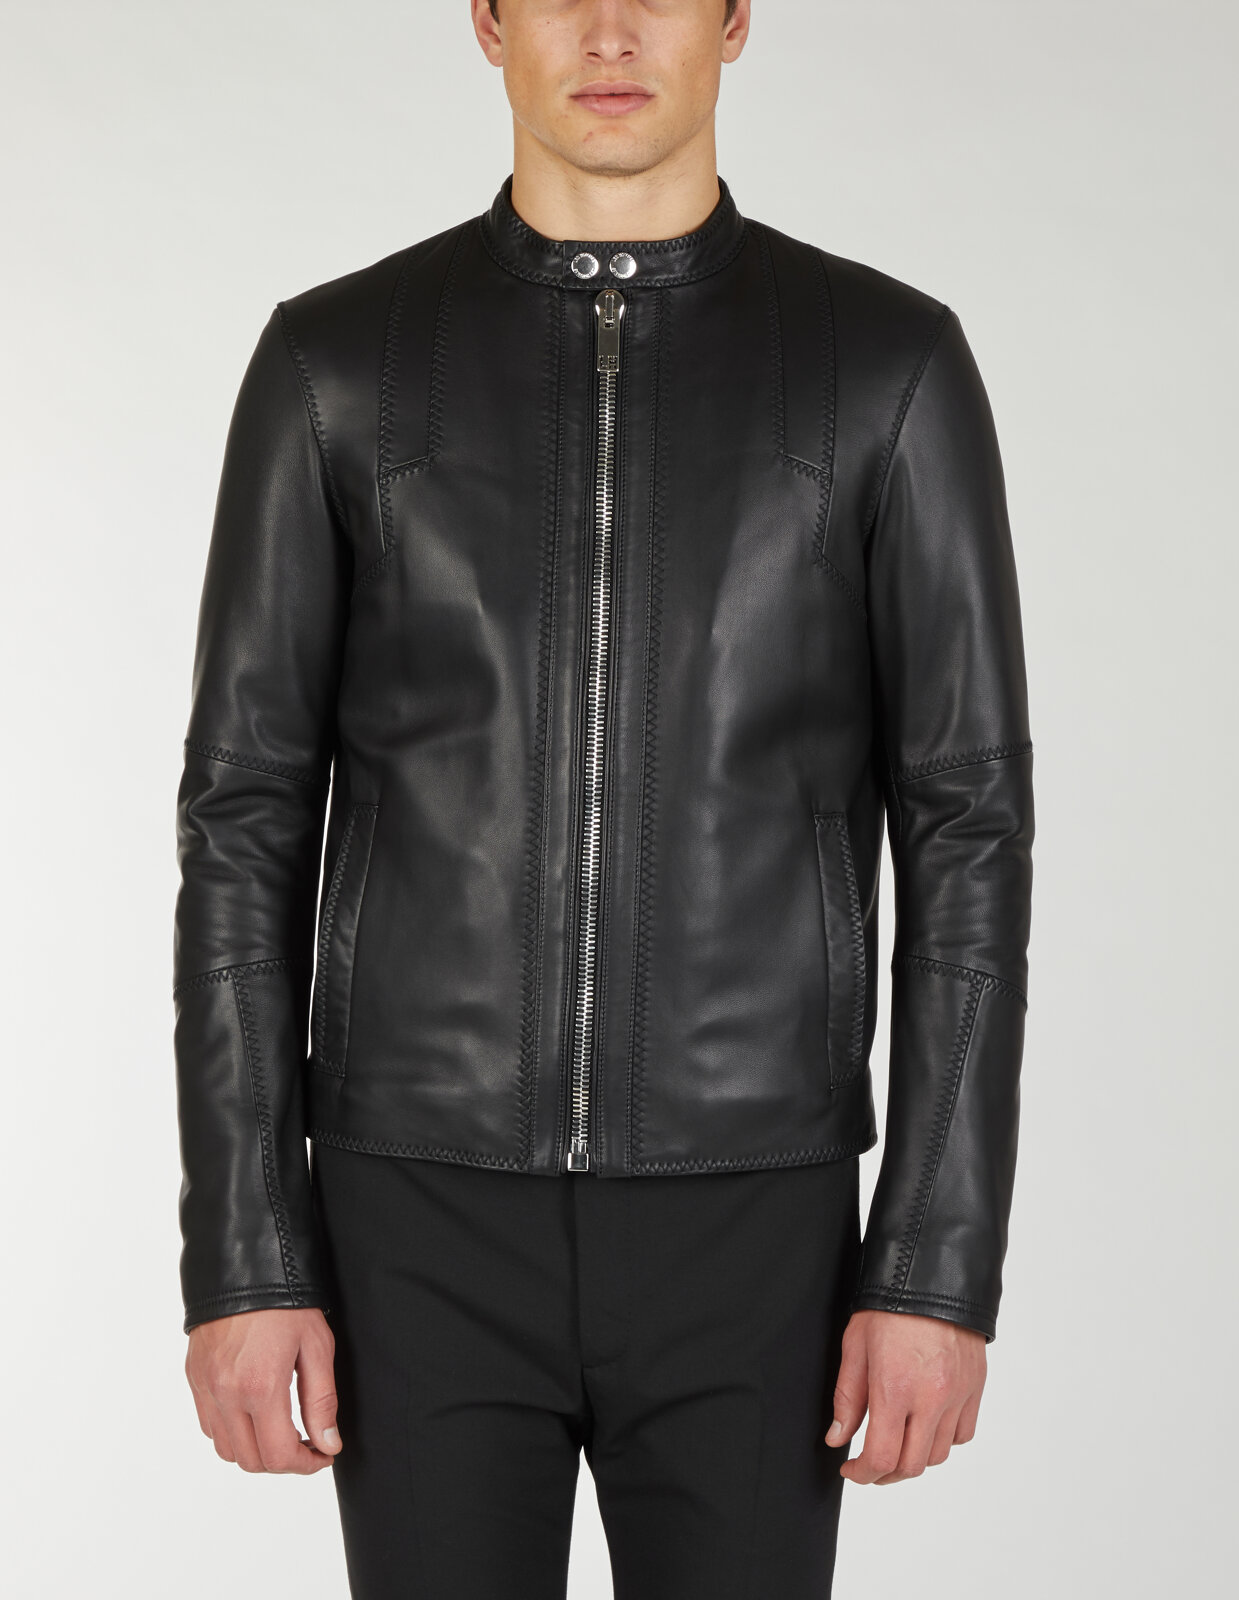 Leather Biker With Stitching Details - Les Hommes